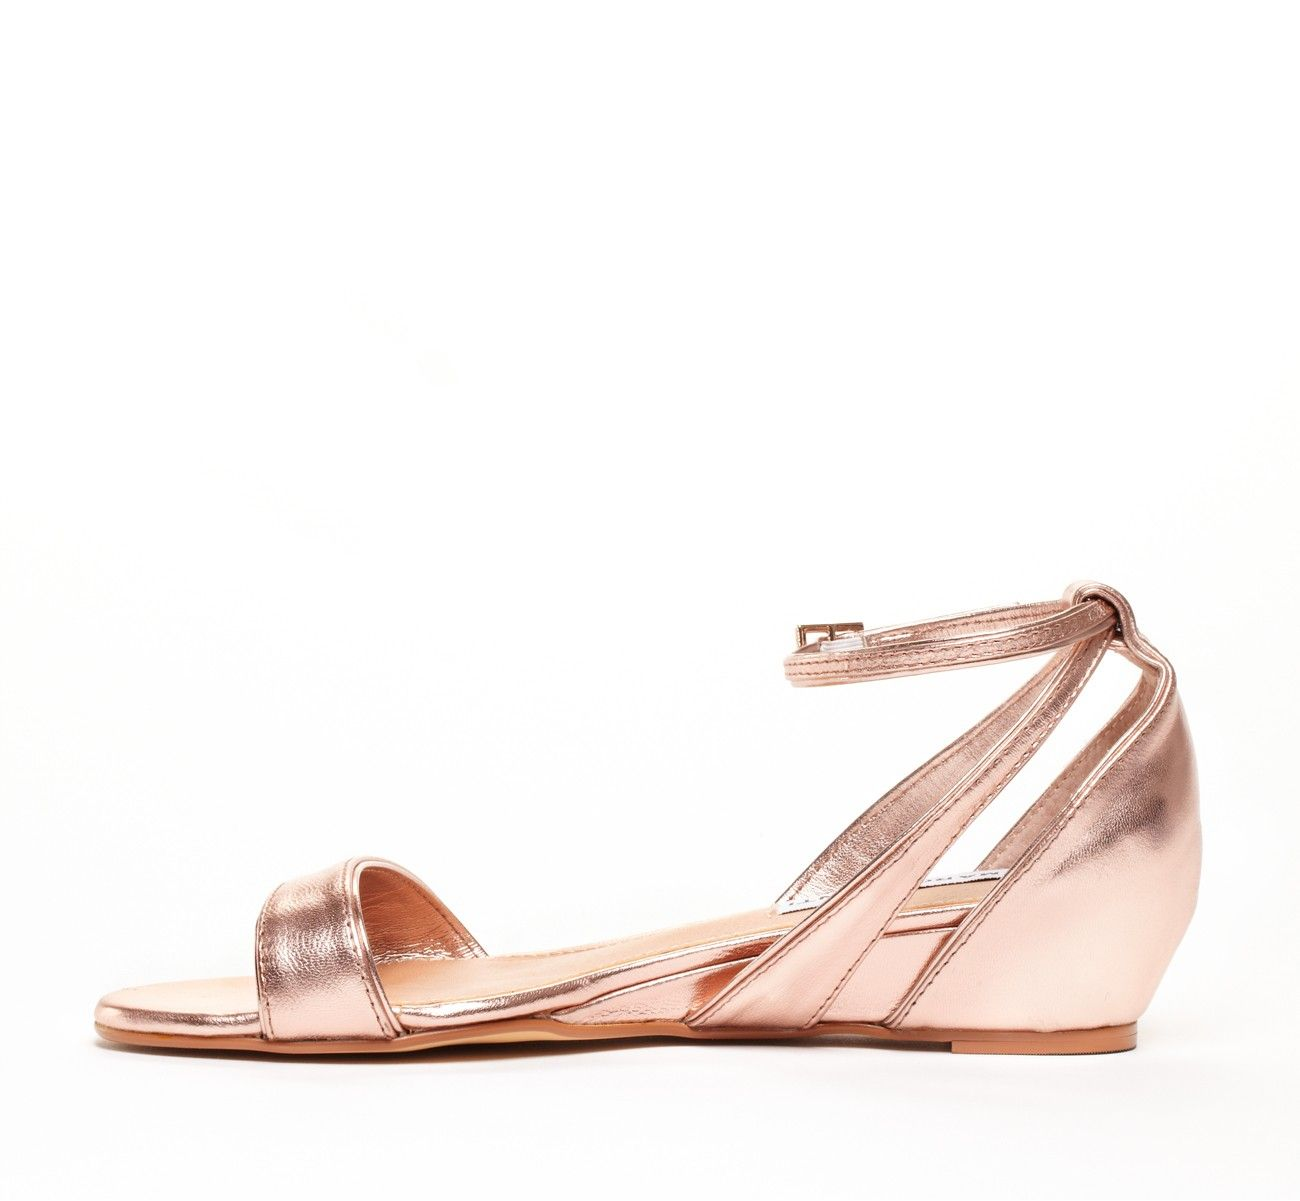 Metallic mini wedge